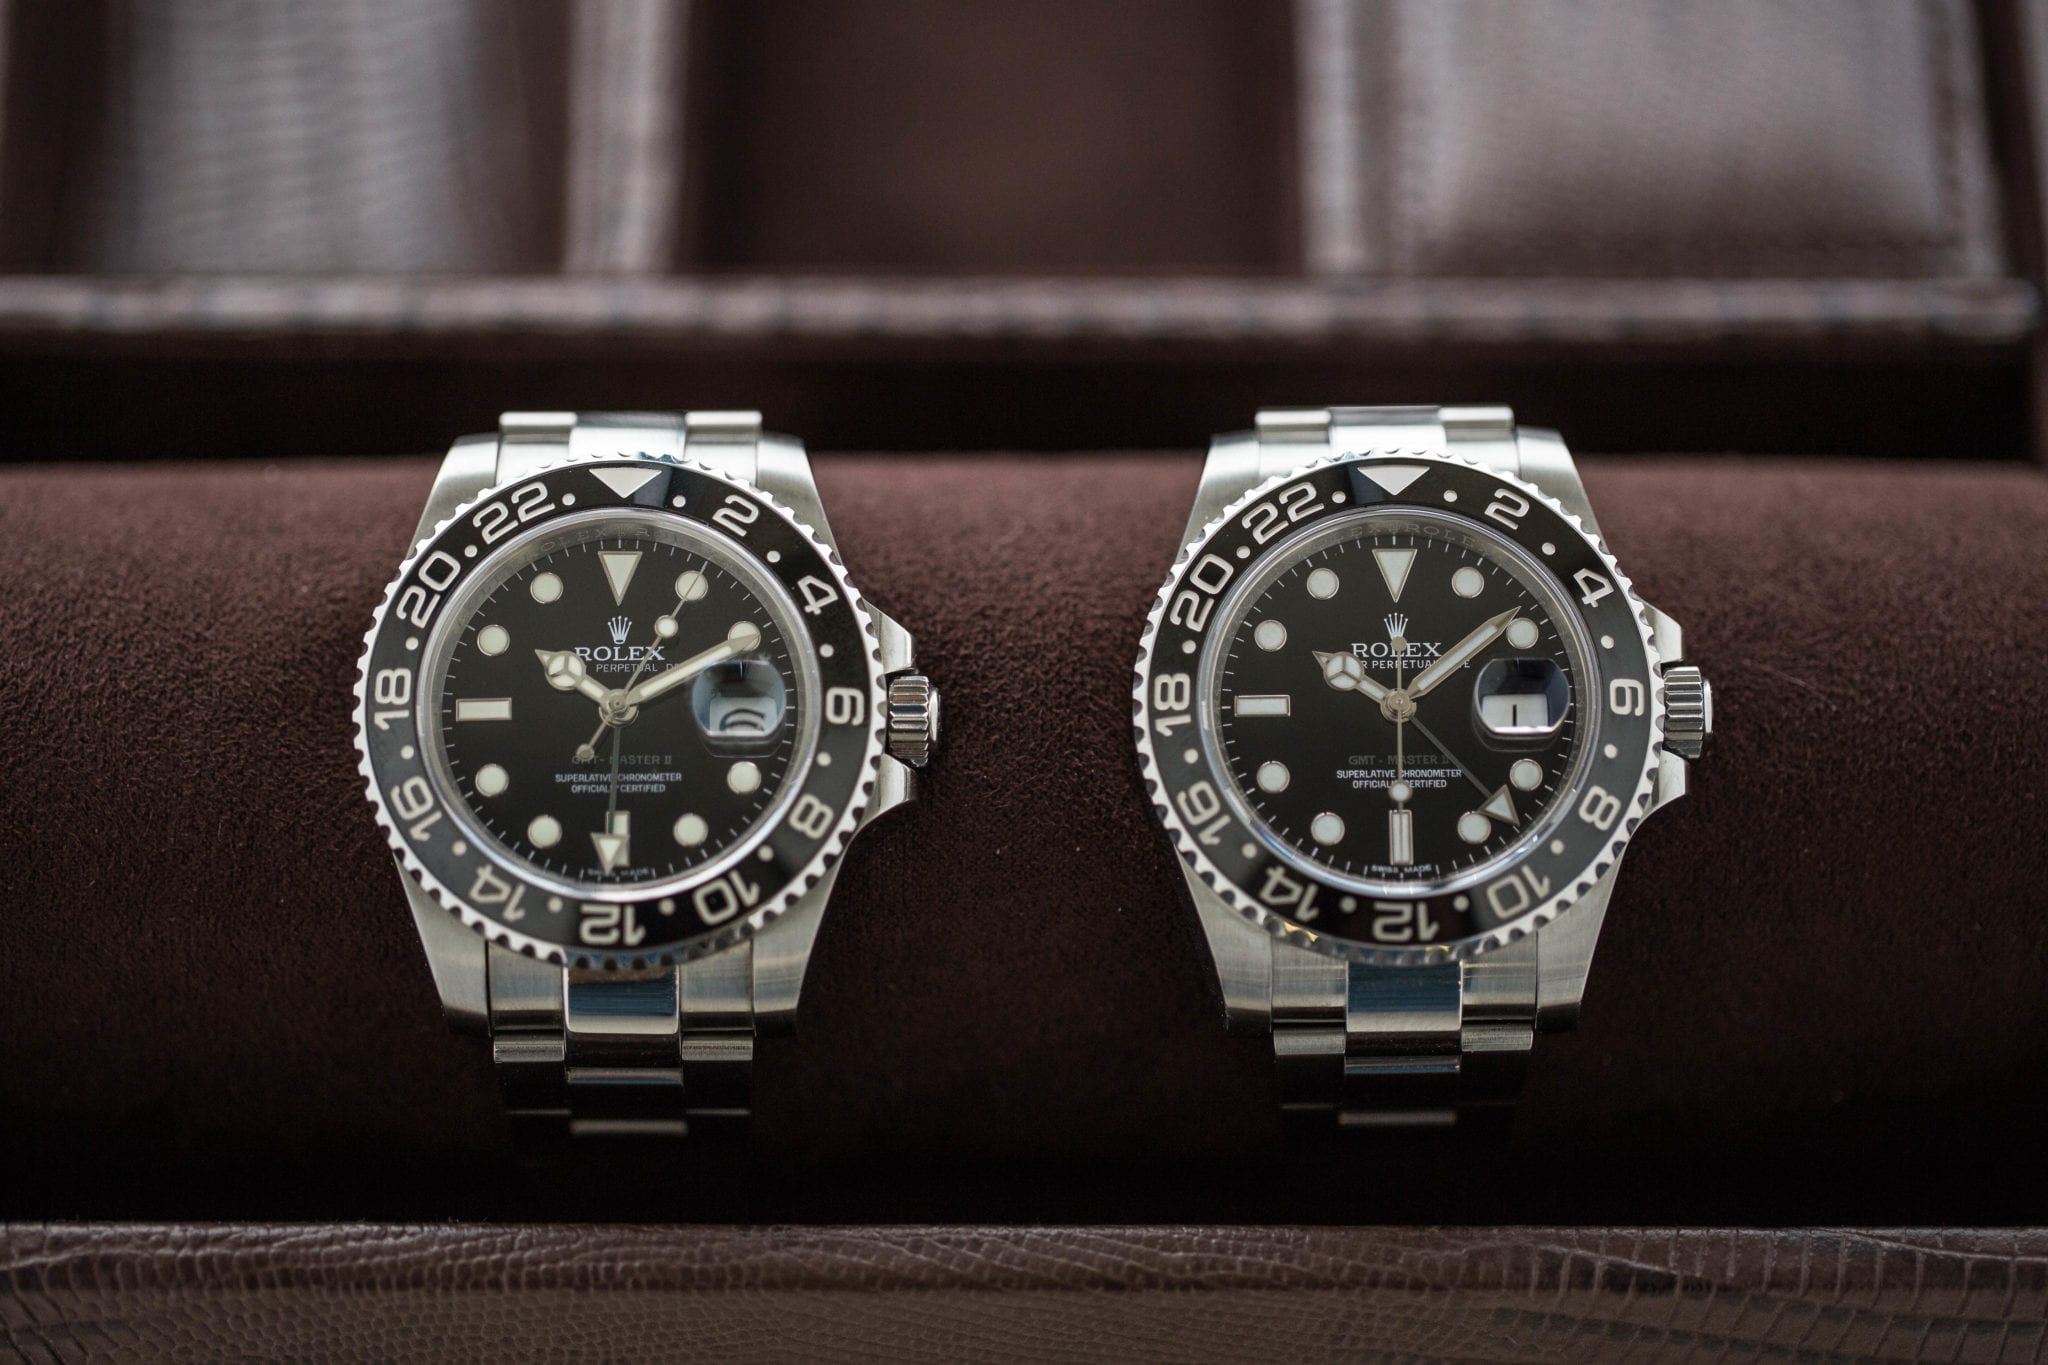 Rolex Nachbau Video Real Vs Fake Rolex Gmt Master Ii Crown